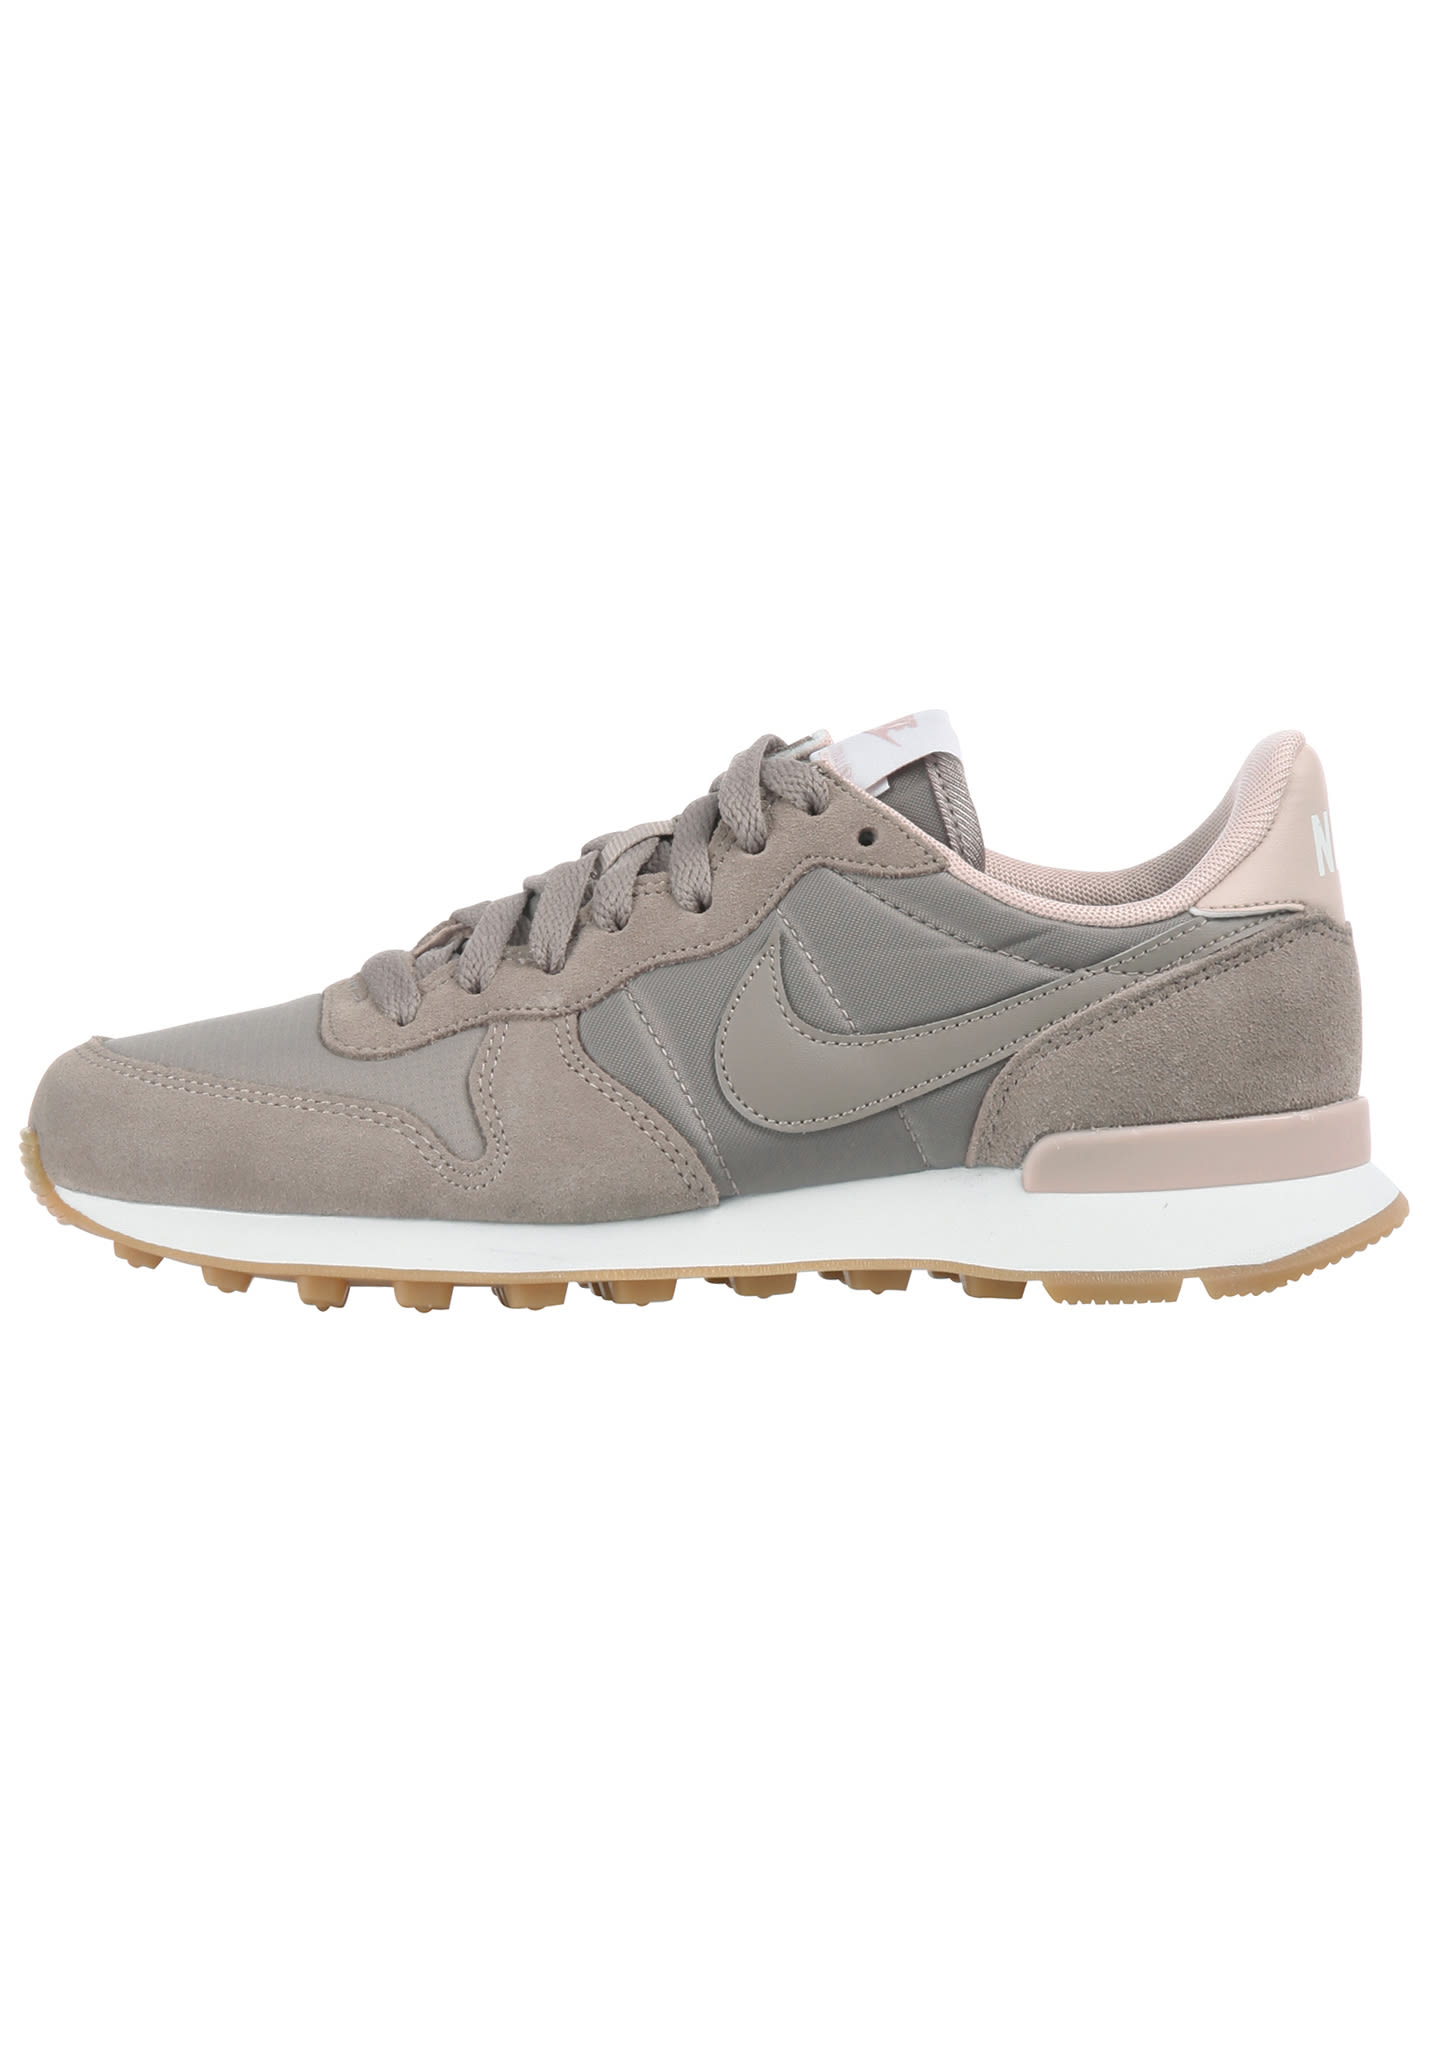 cheap for discount 6ade7 29178 NIKE SPORTSWEAR Internationalist - Sneaker für Damen - Braun - Planet Sports